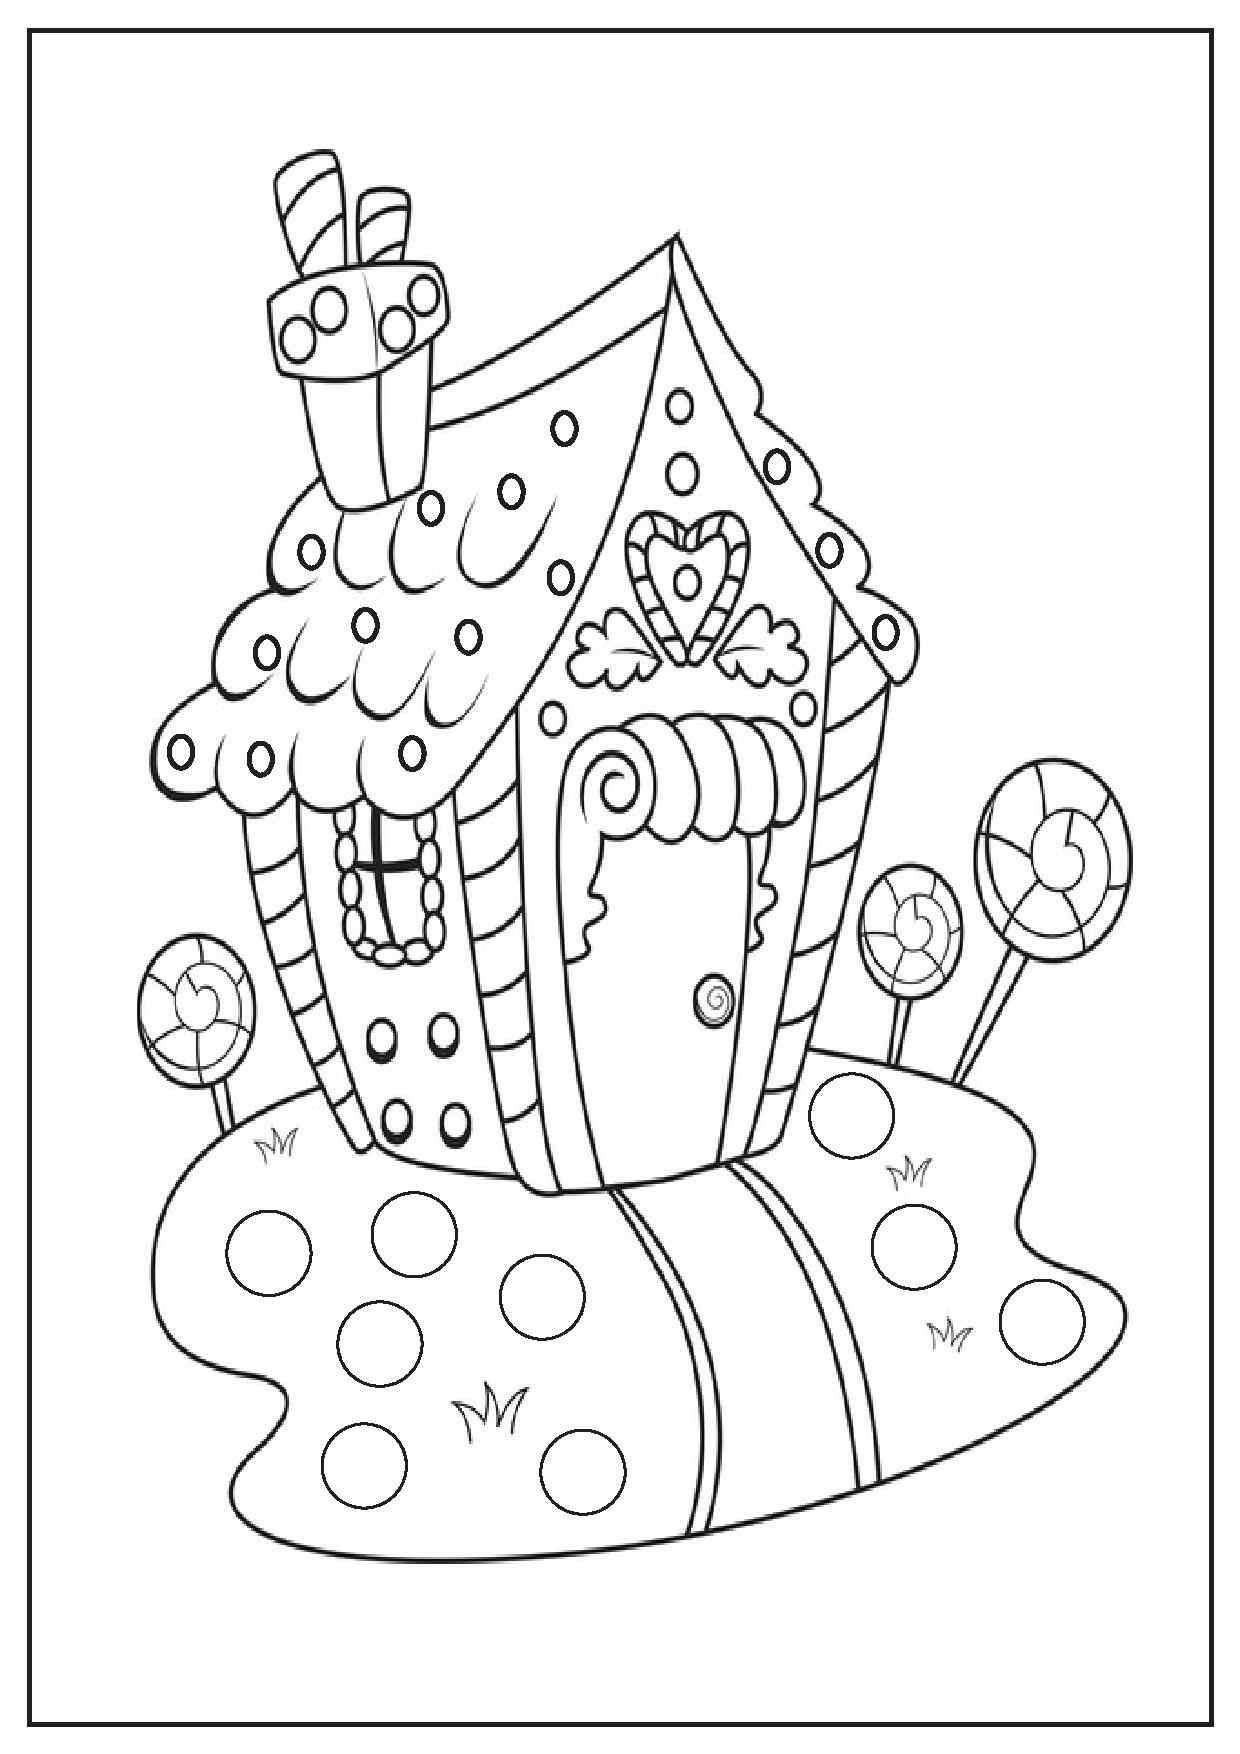 kindergarten coloring sheets Only Coloring Pages – Christmas Worksheets Printables